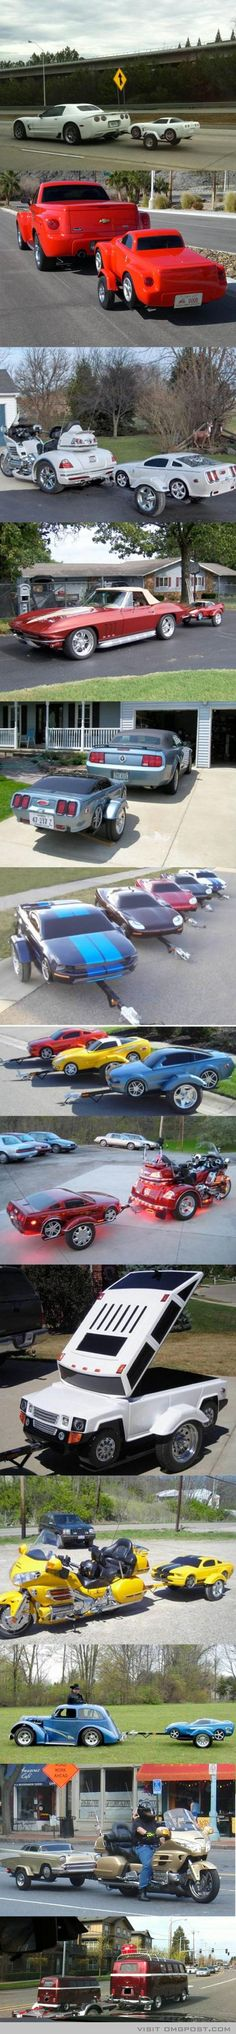 Car Trailers That Look Like Miniature Cars..Re-pin brought to you by agents of #Carinsurance at #HouseofInsurance in Eugene, Oregon